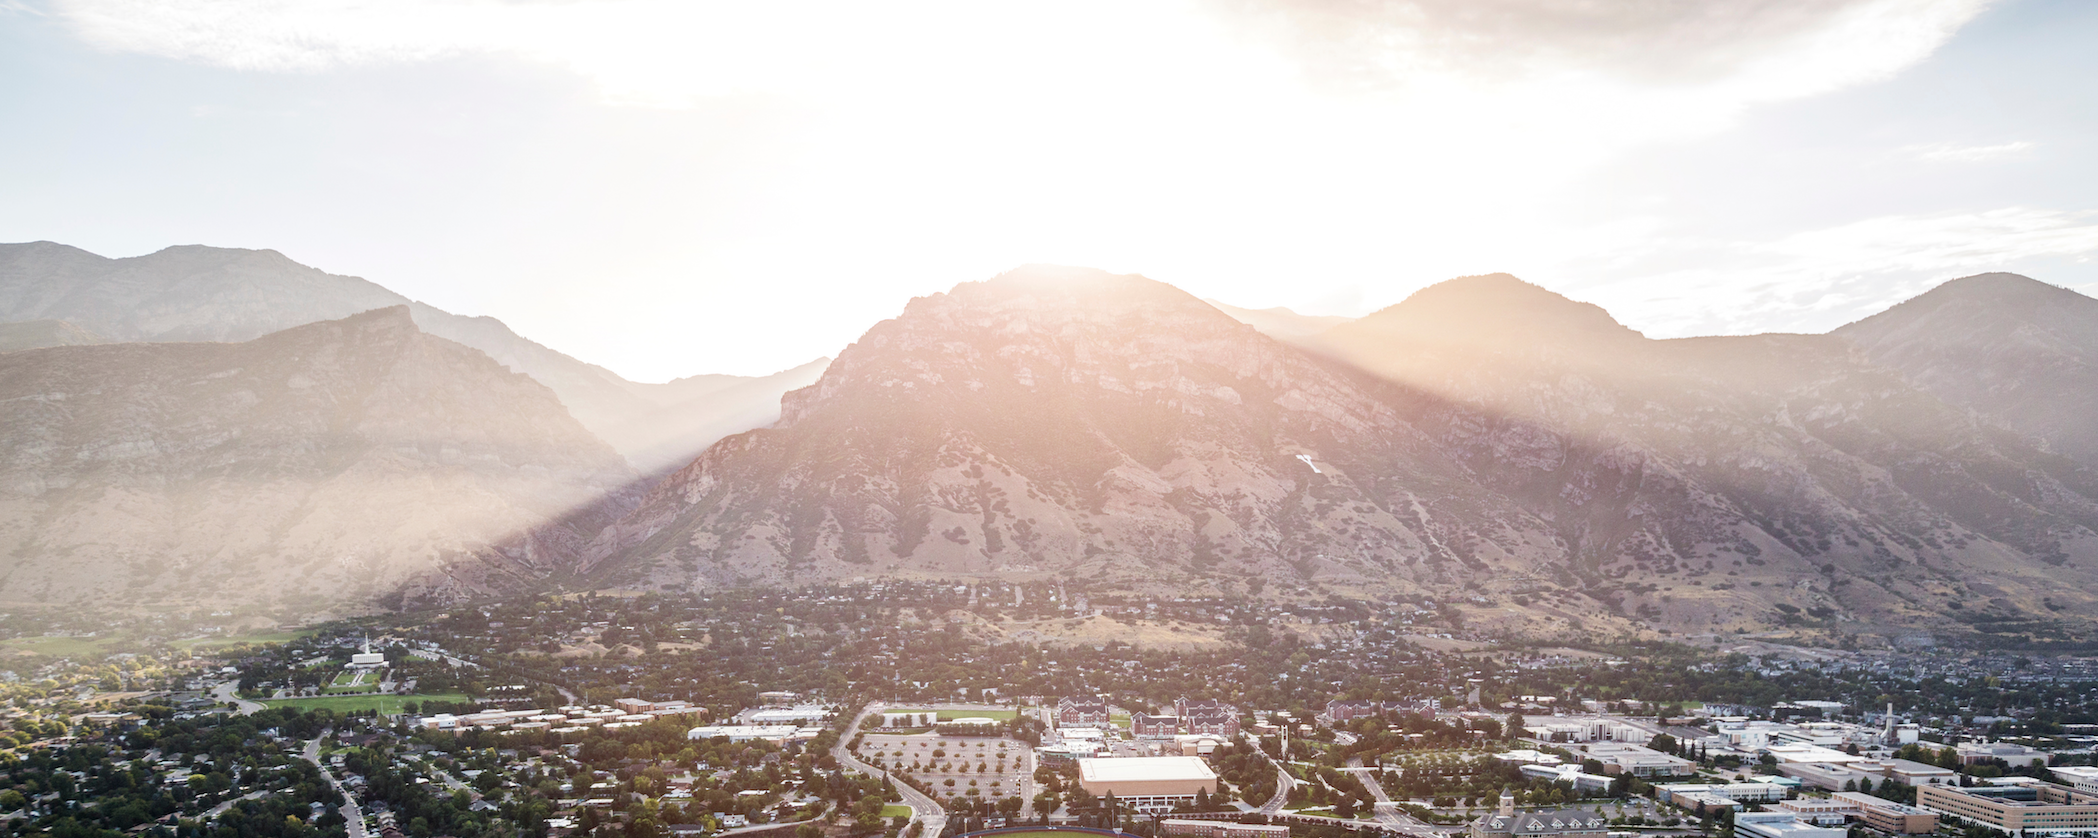 Aerial view of Brigham Young University Campus looking east.